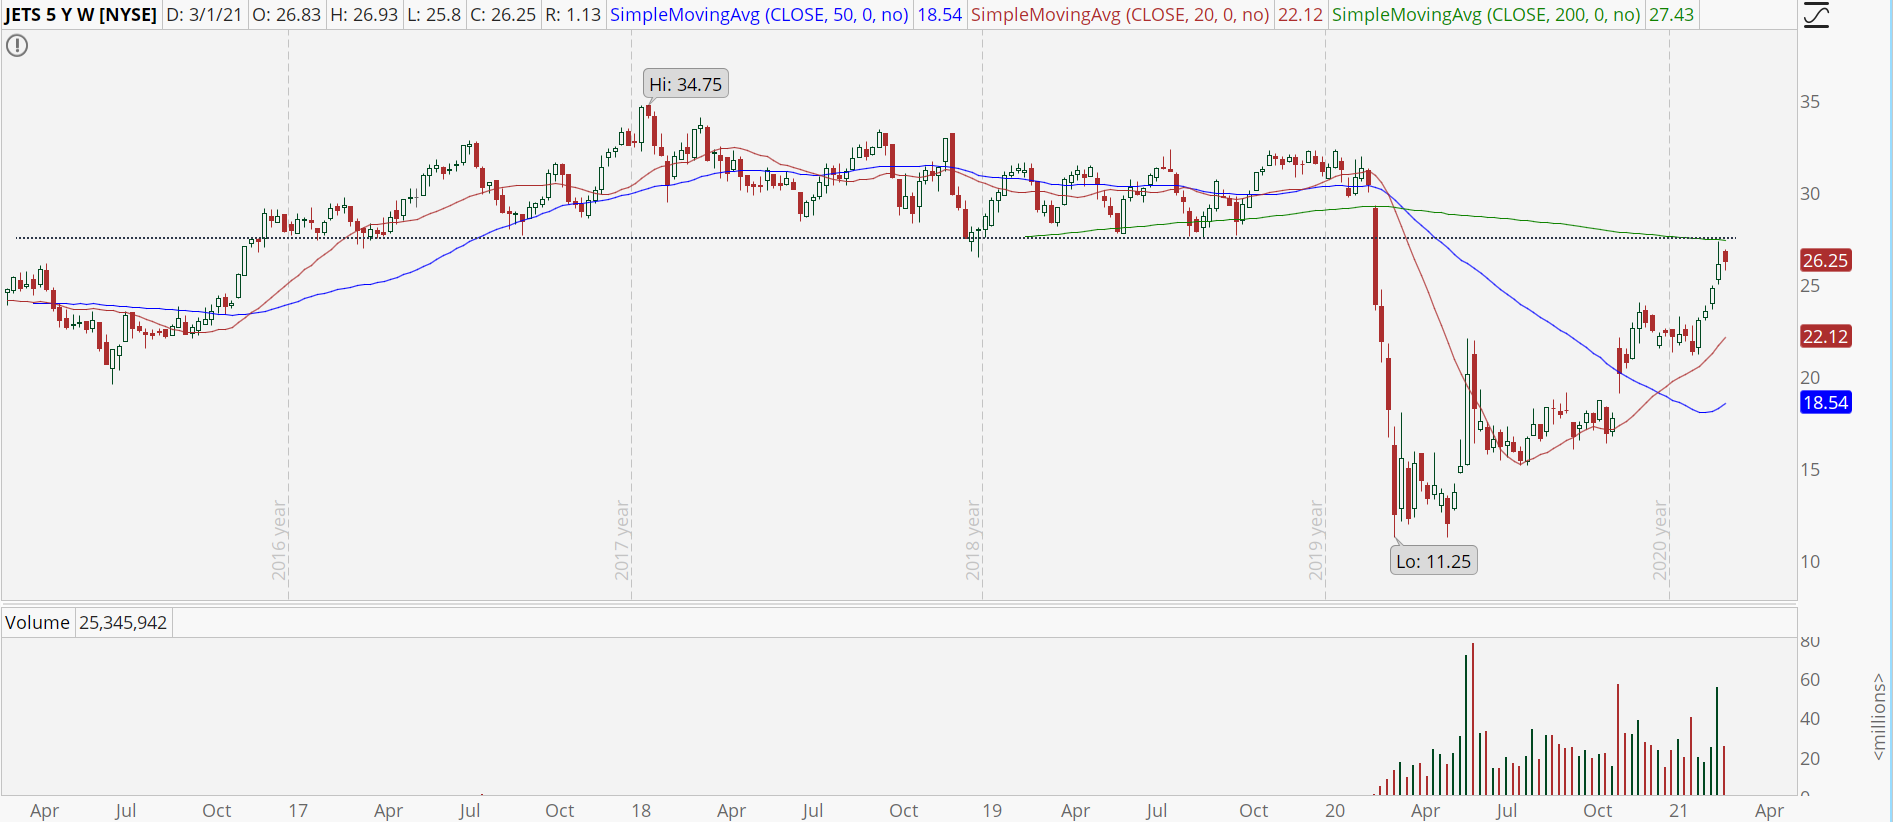 Global Jets ETF (JETS) weekly chart at resistance